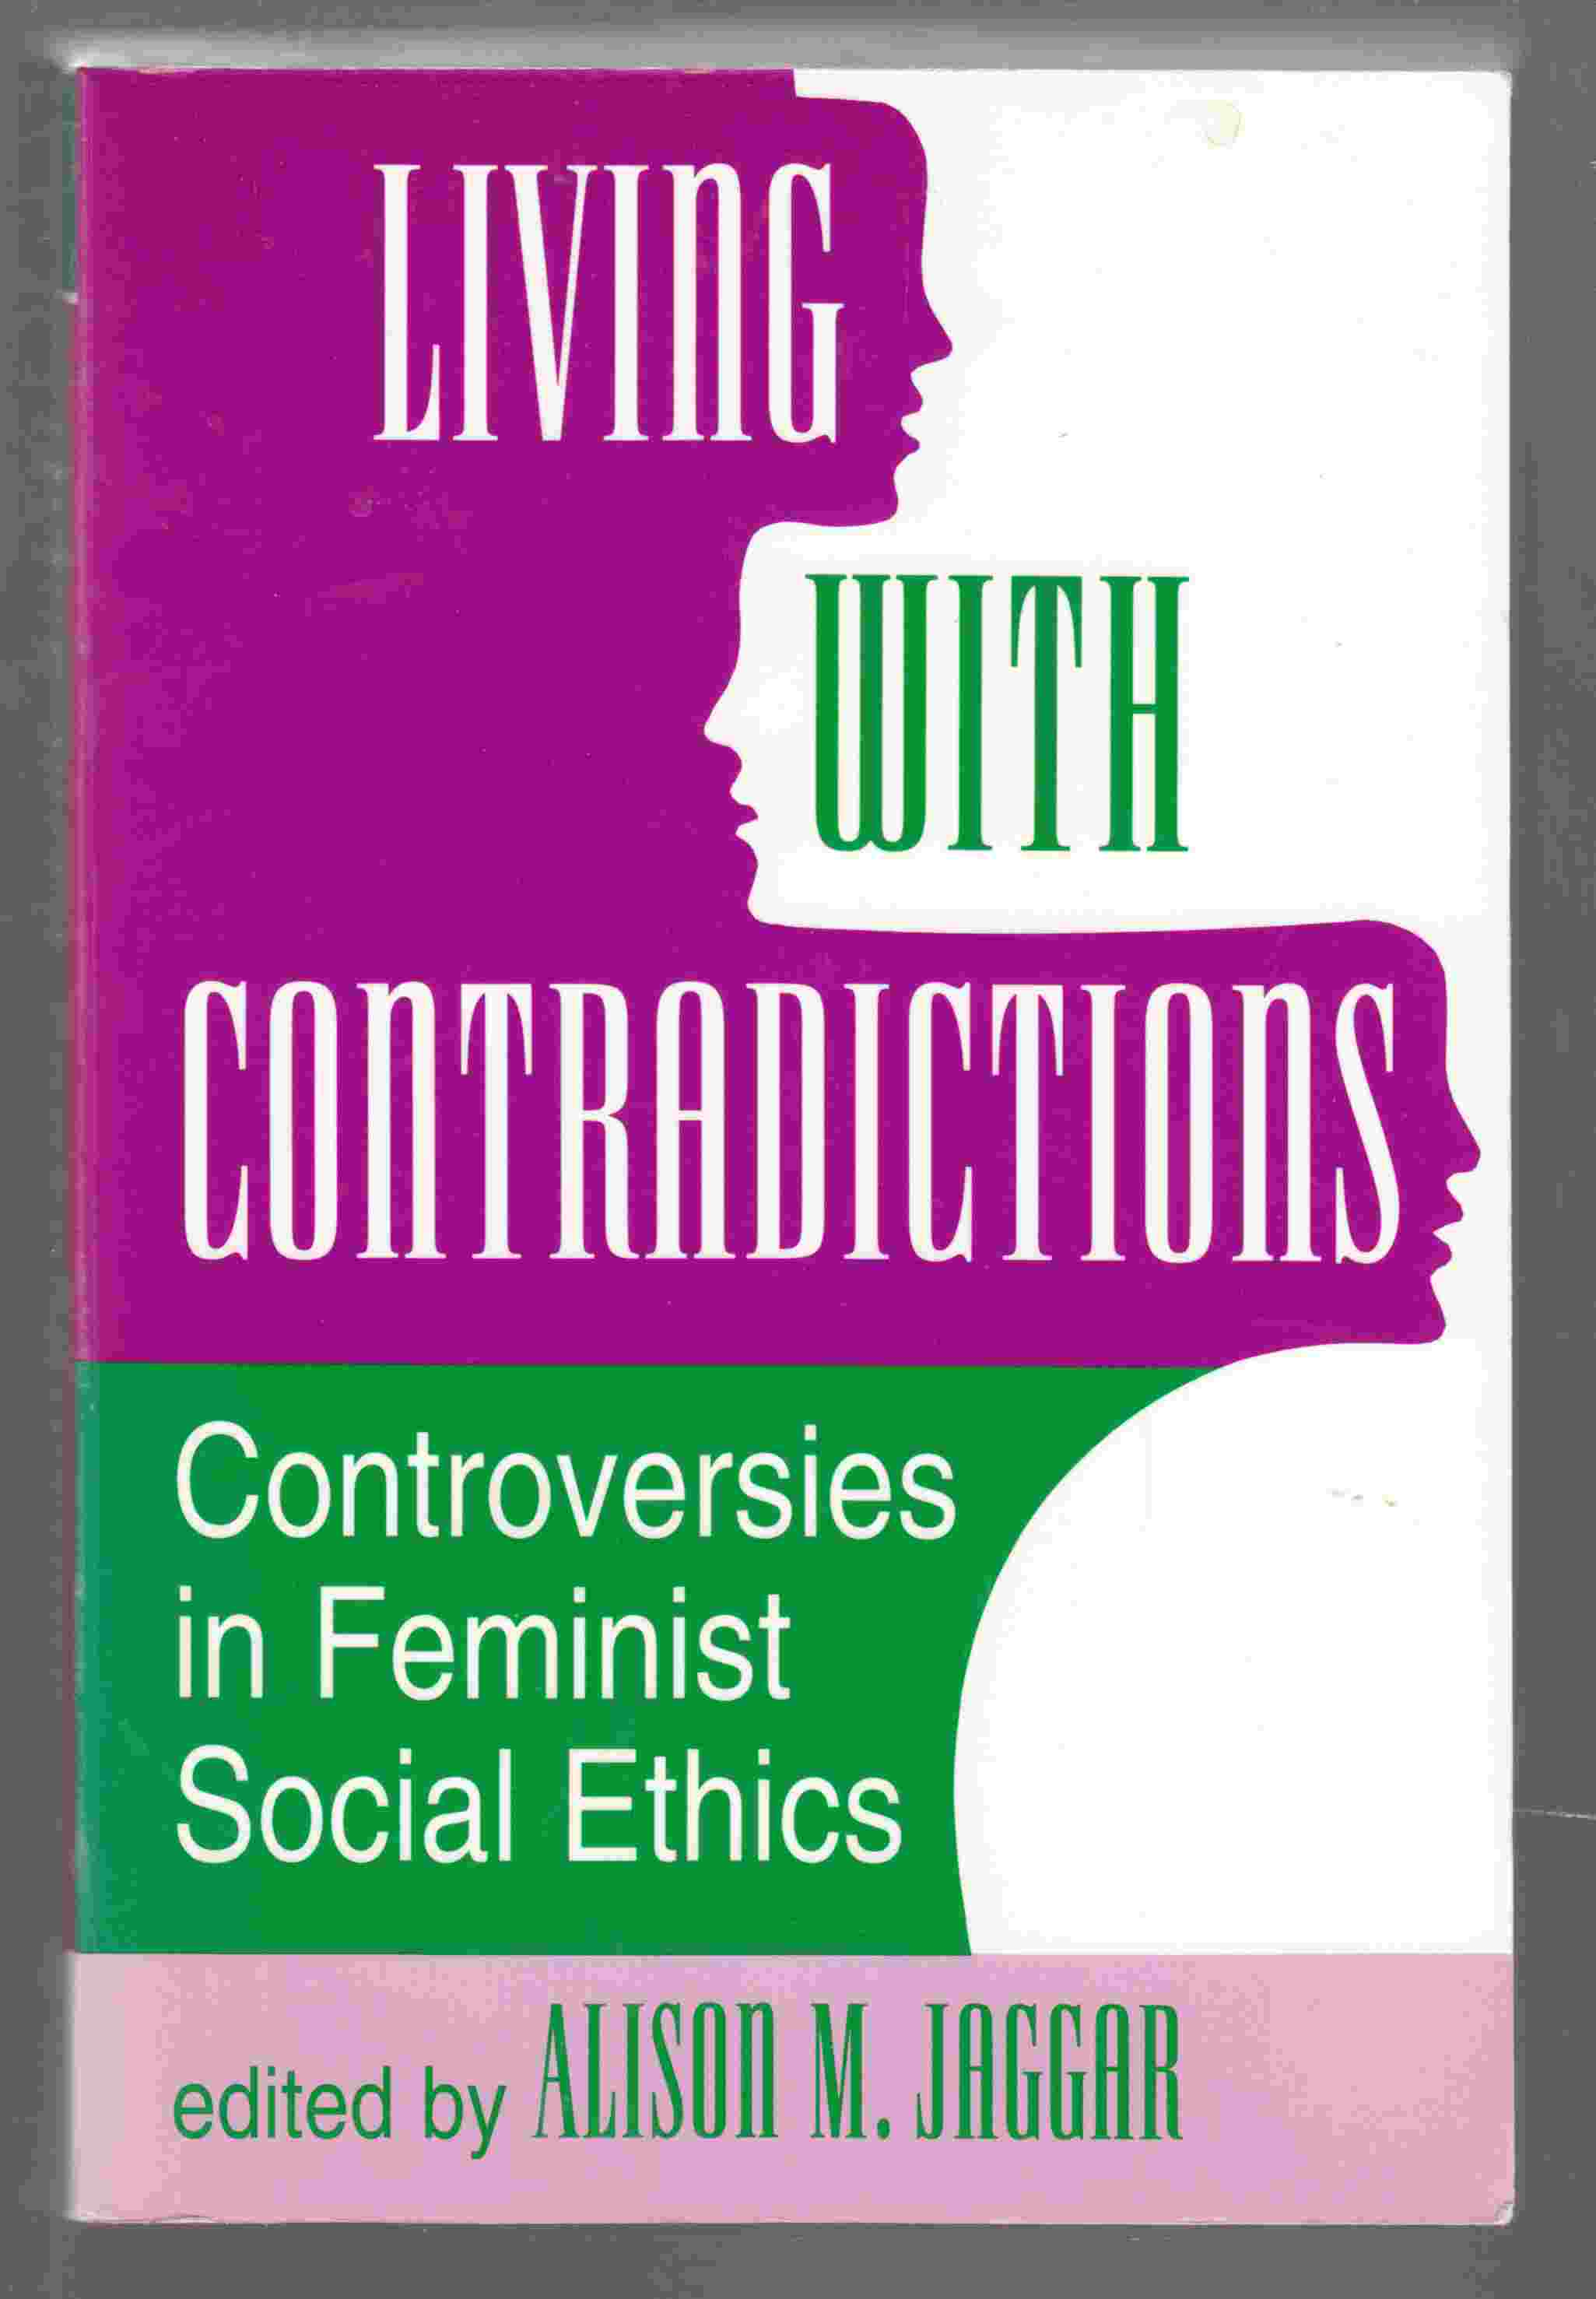 Image for Living with Contradictions Controversies in Feminist Social Ethics